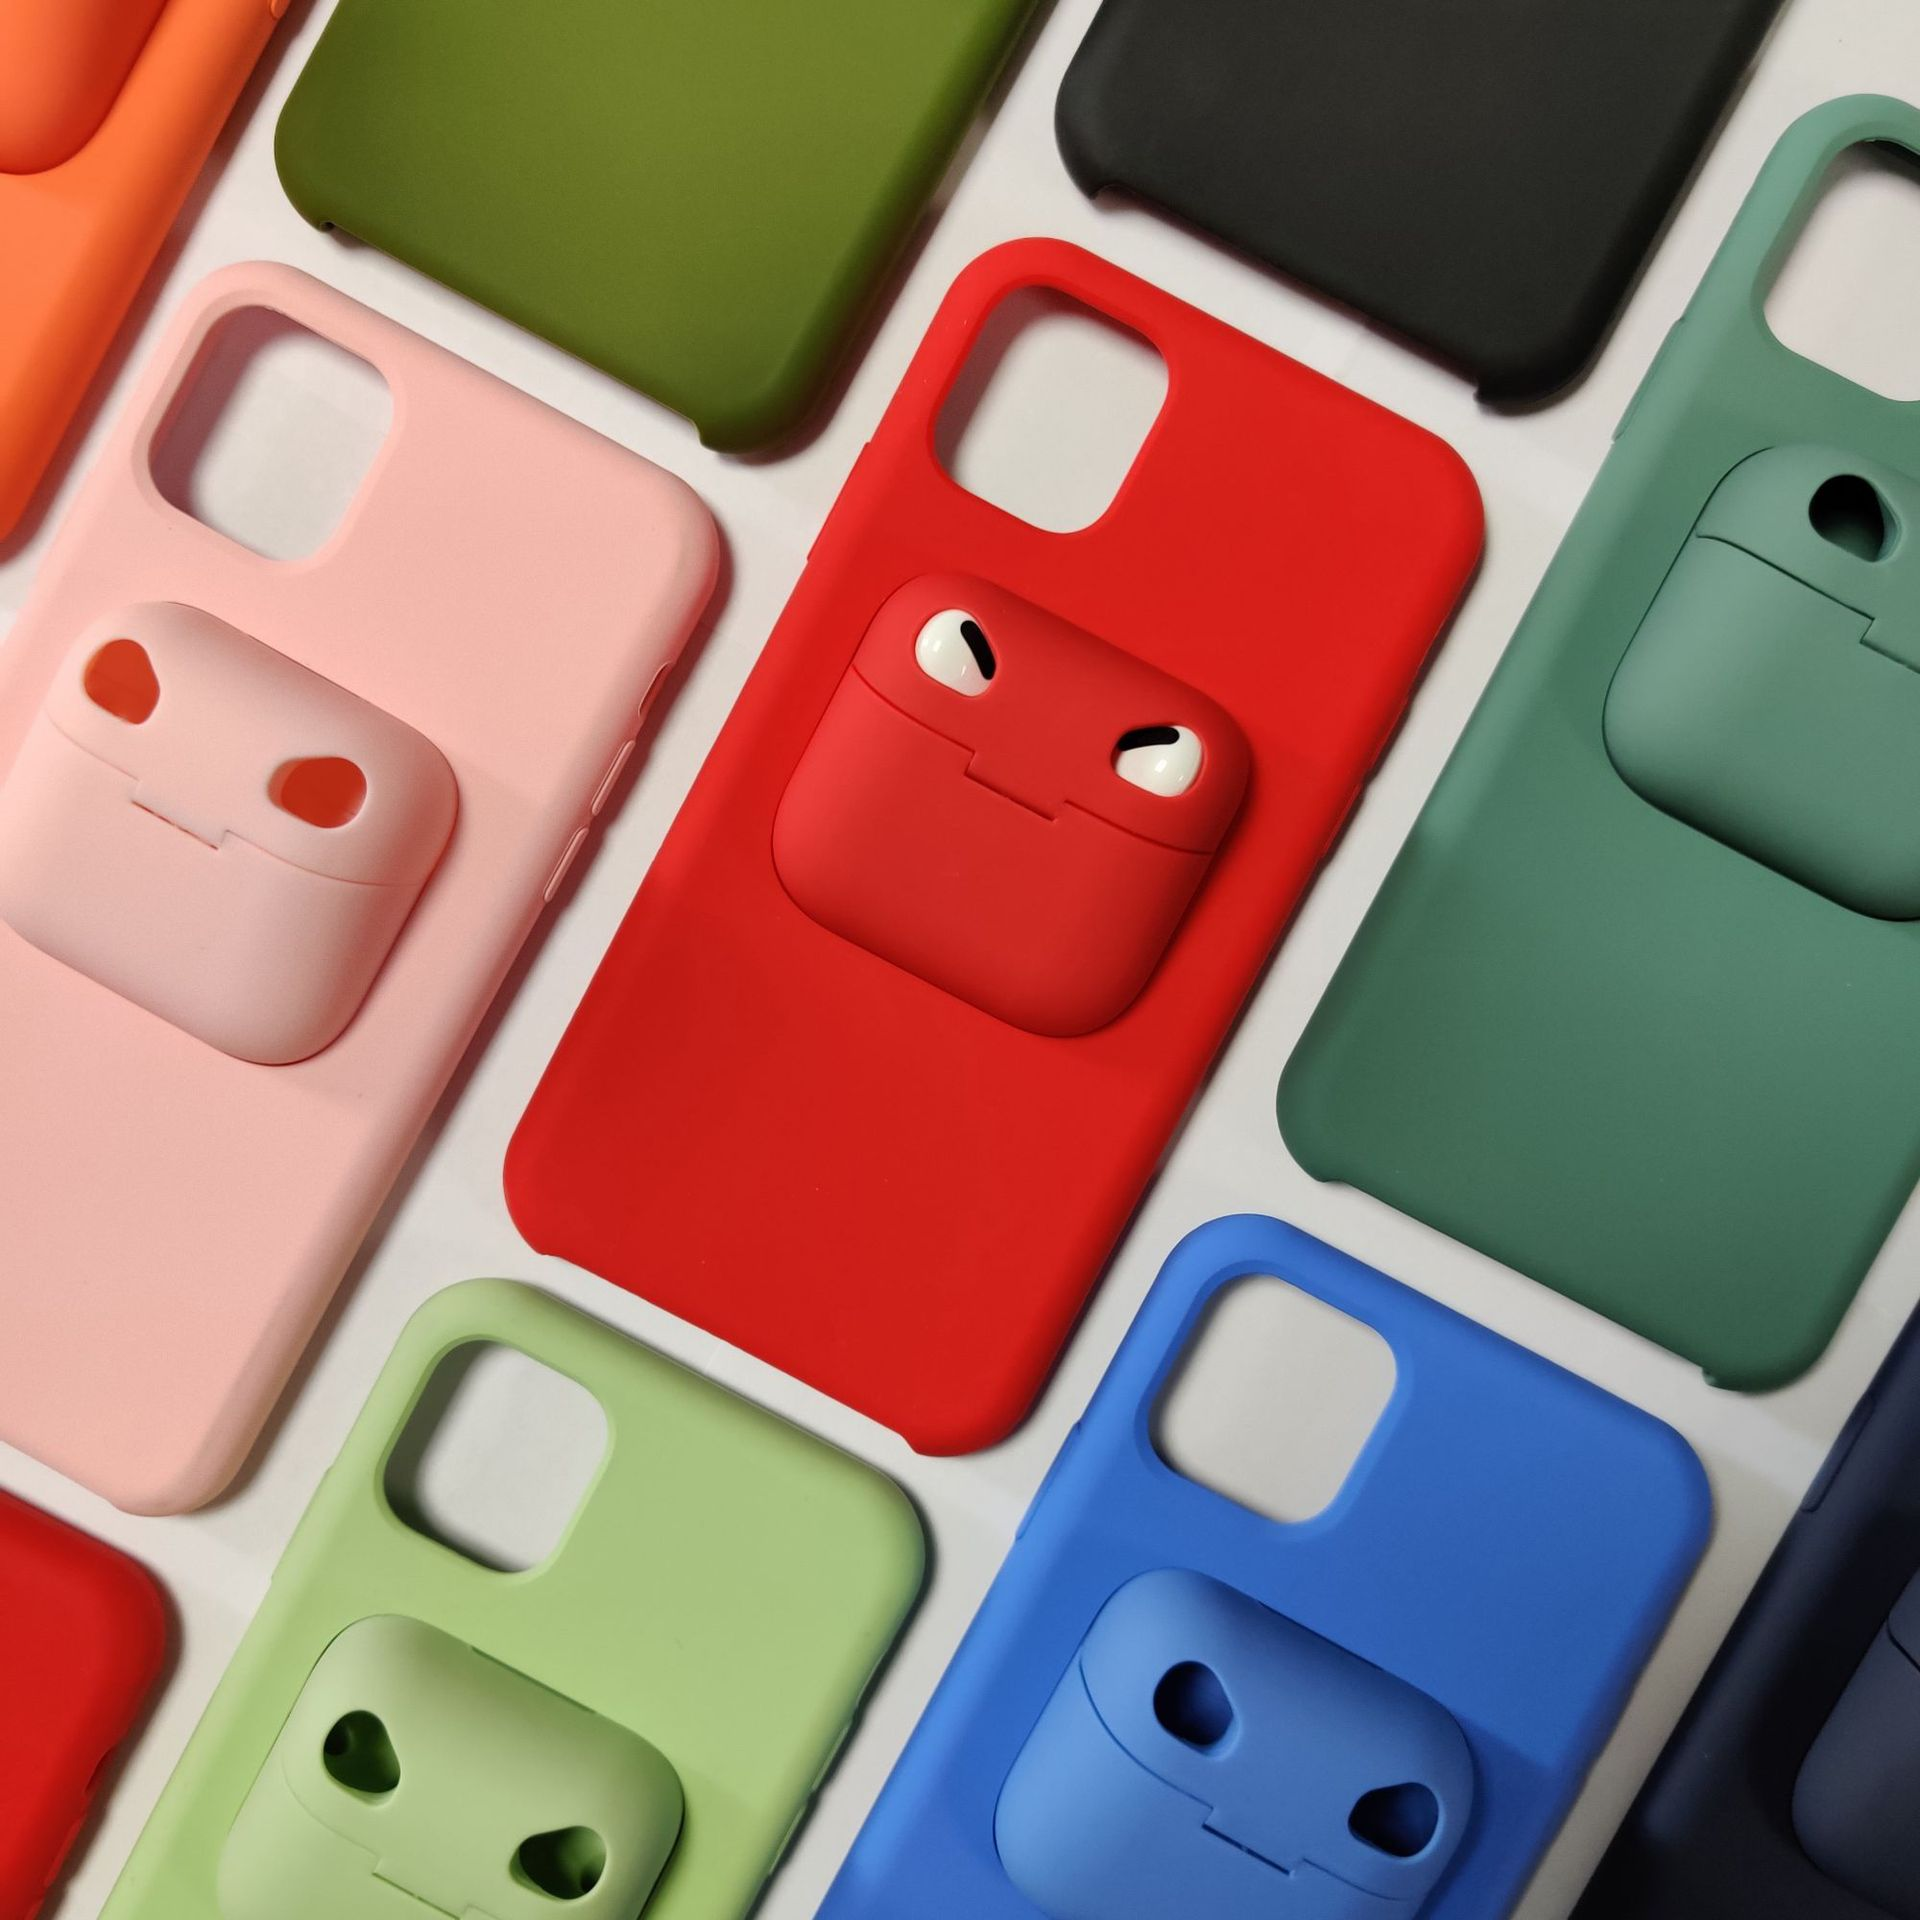 video-TENCHEN iPhone 12 Airpods Case Holder Slim Durable 2 in 1 Cover Designed for iPhone Protects -5